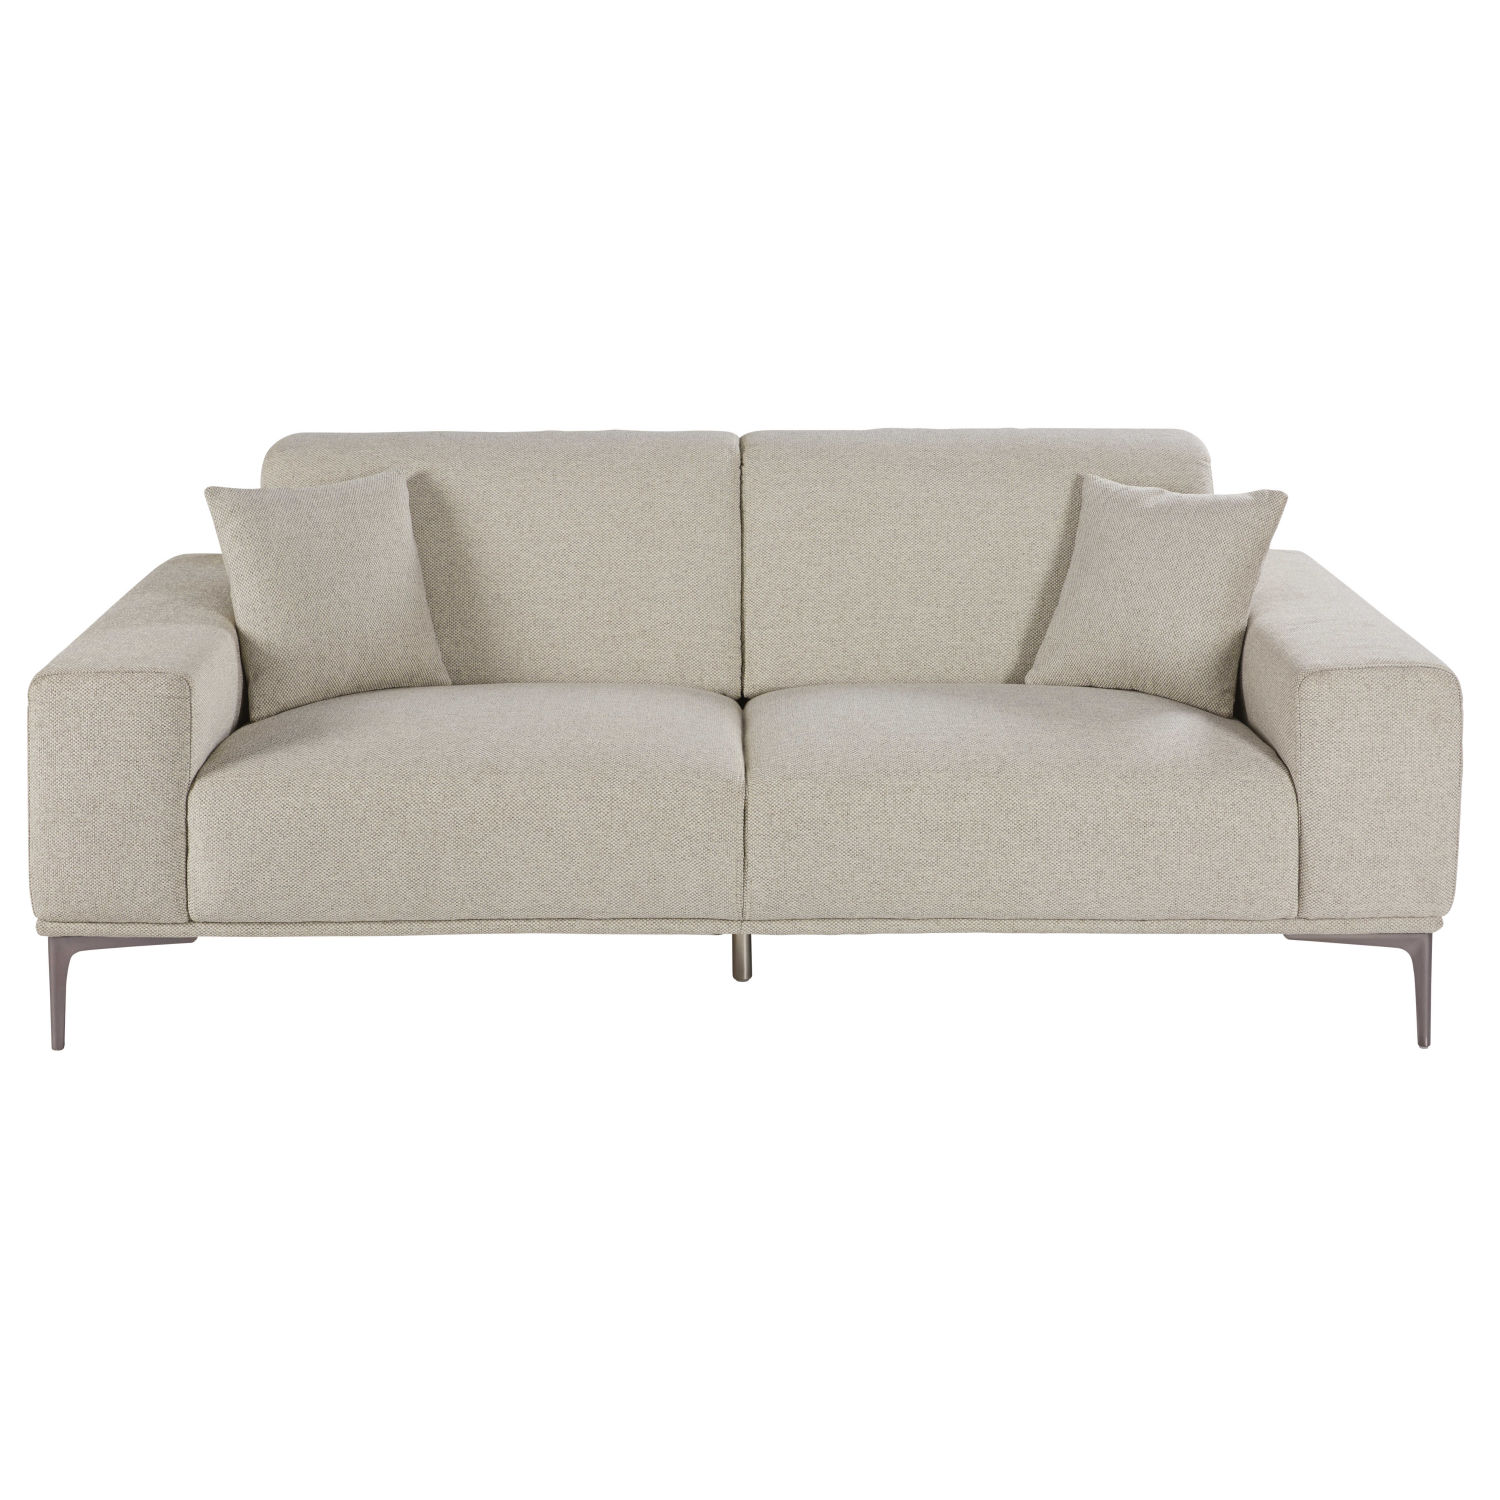 Maison Du Monde Schlafsofa Mottled Light Grey 2 3 Seater Sofa Maisons Du Monde